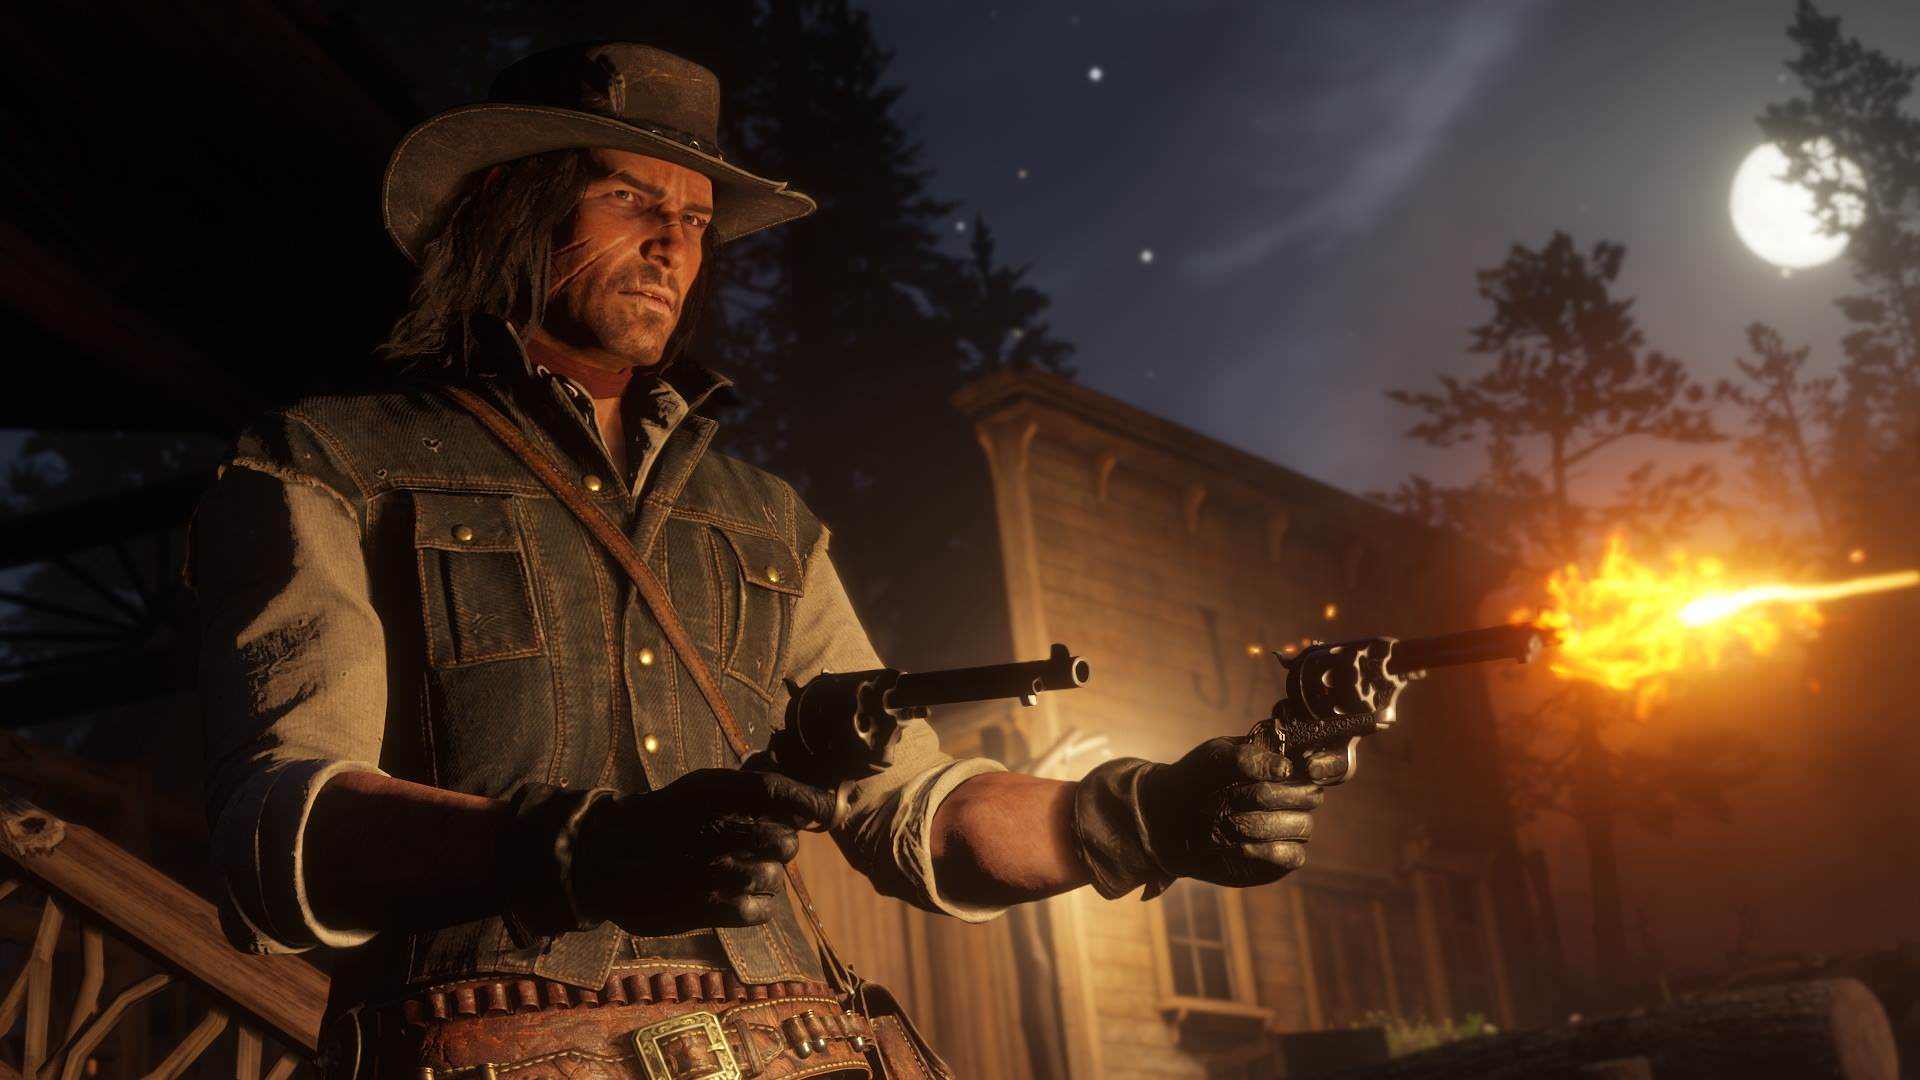 Red Dead Redemption : 10 jolies images, la guitare au coin ...